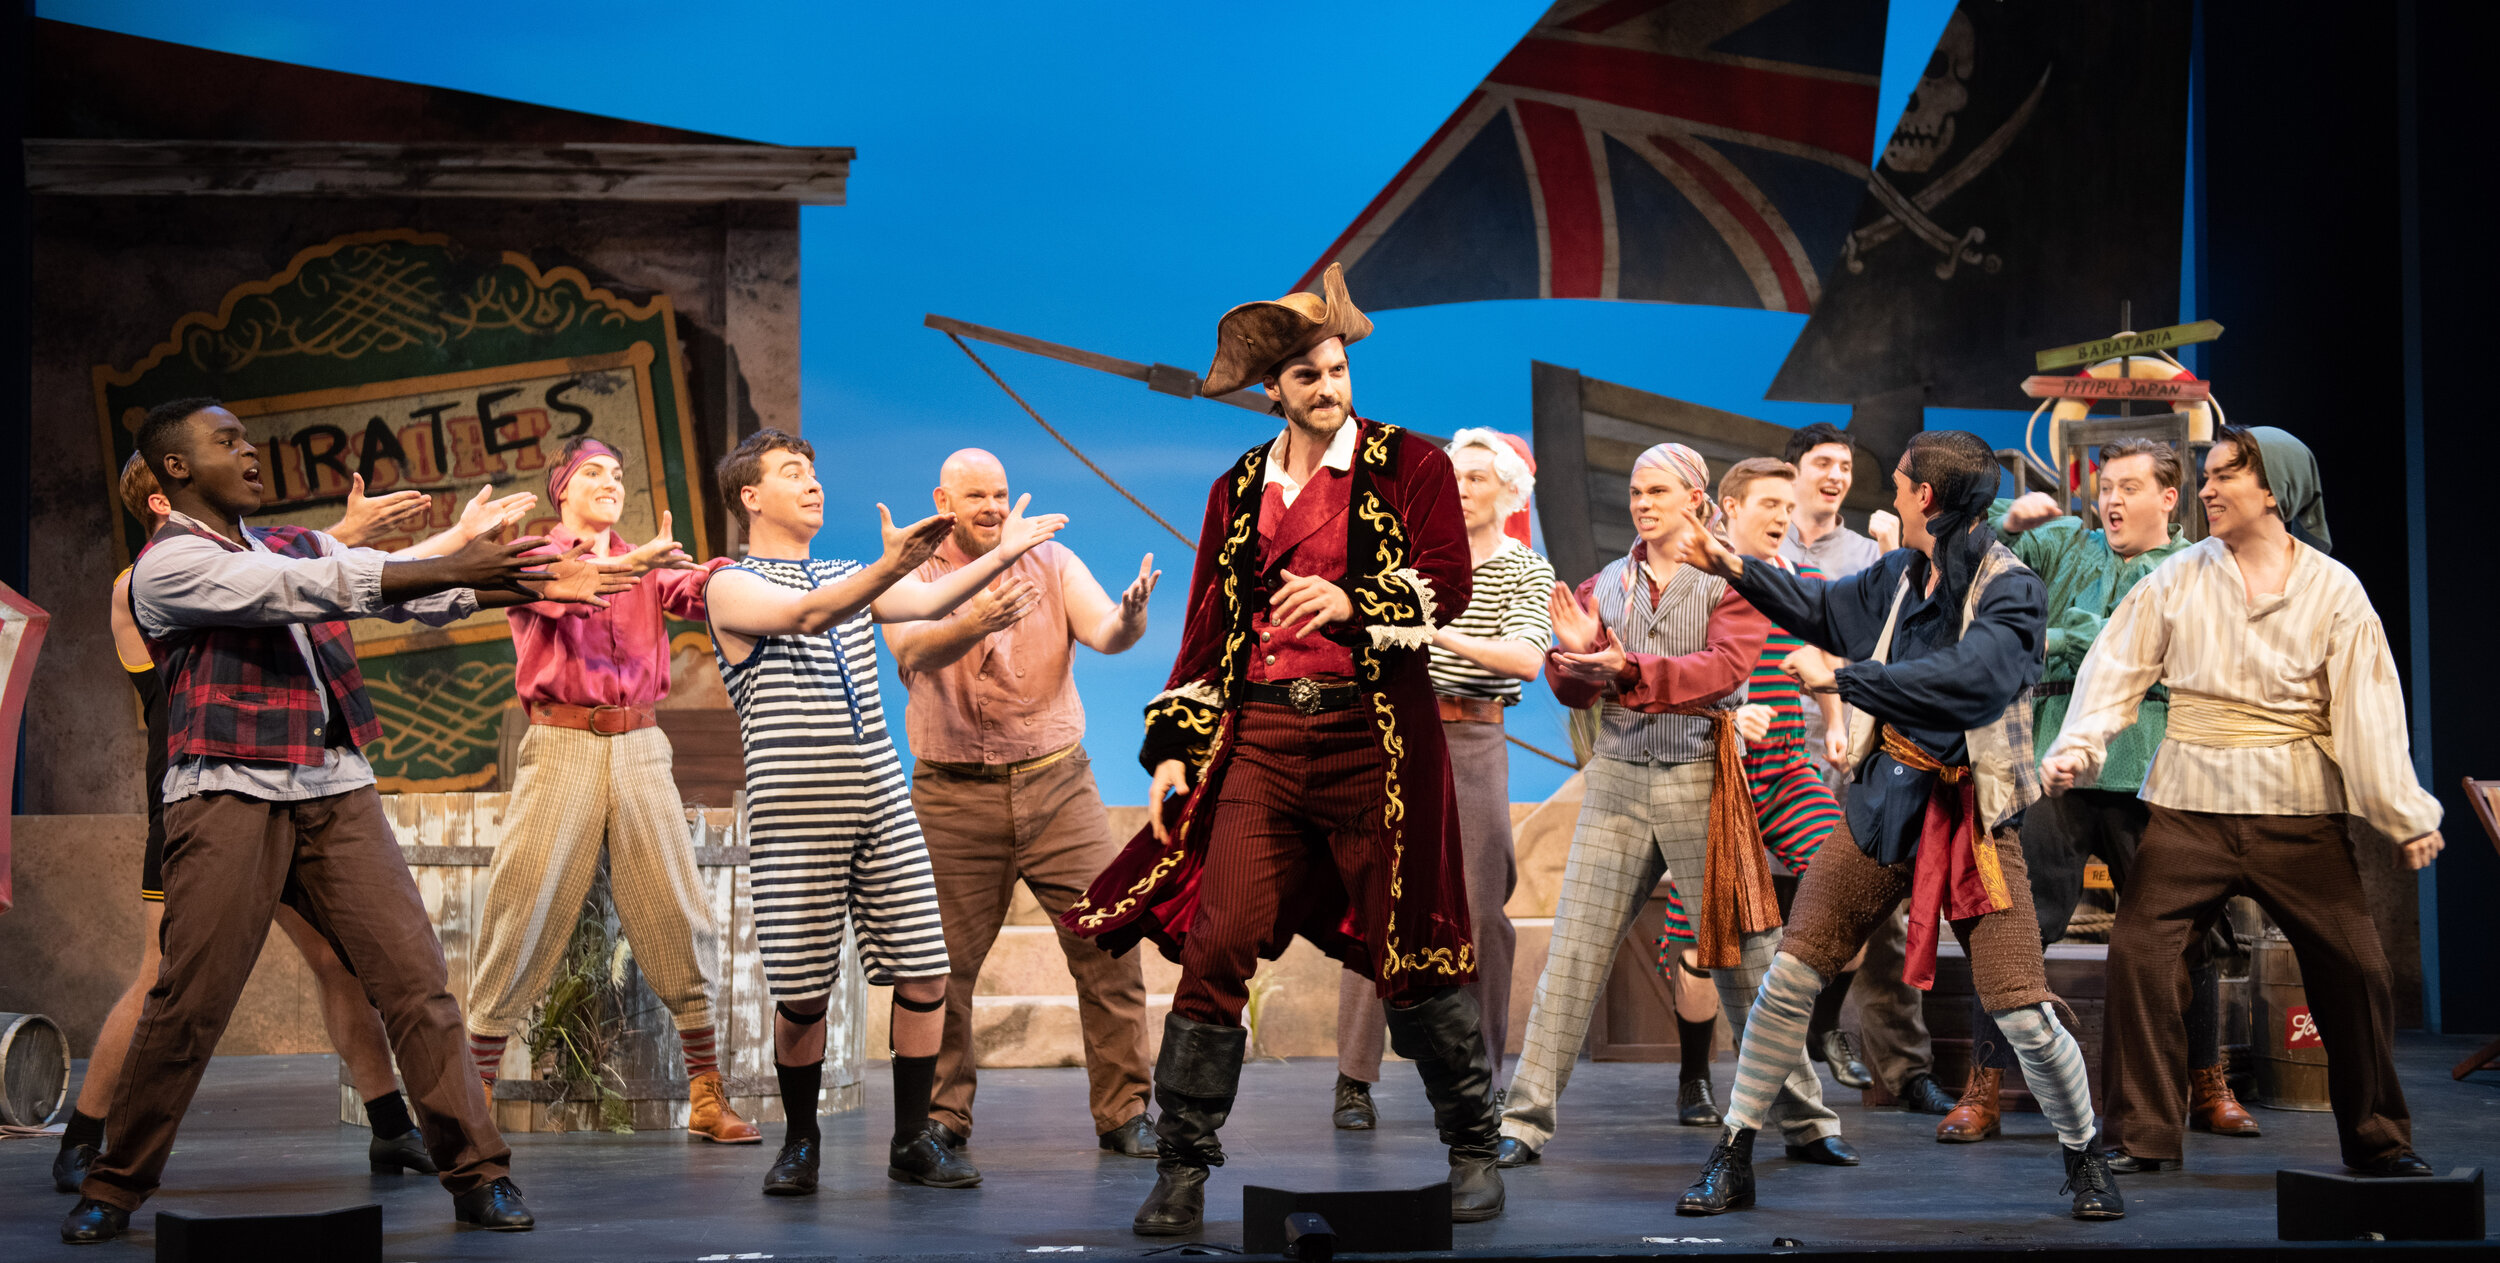 The Pirate King, and the cast of The Pirates of Penzance (photo by Matt Dilyard)